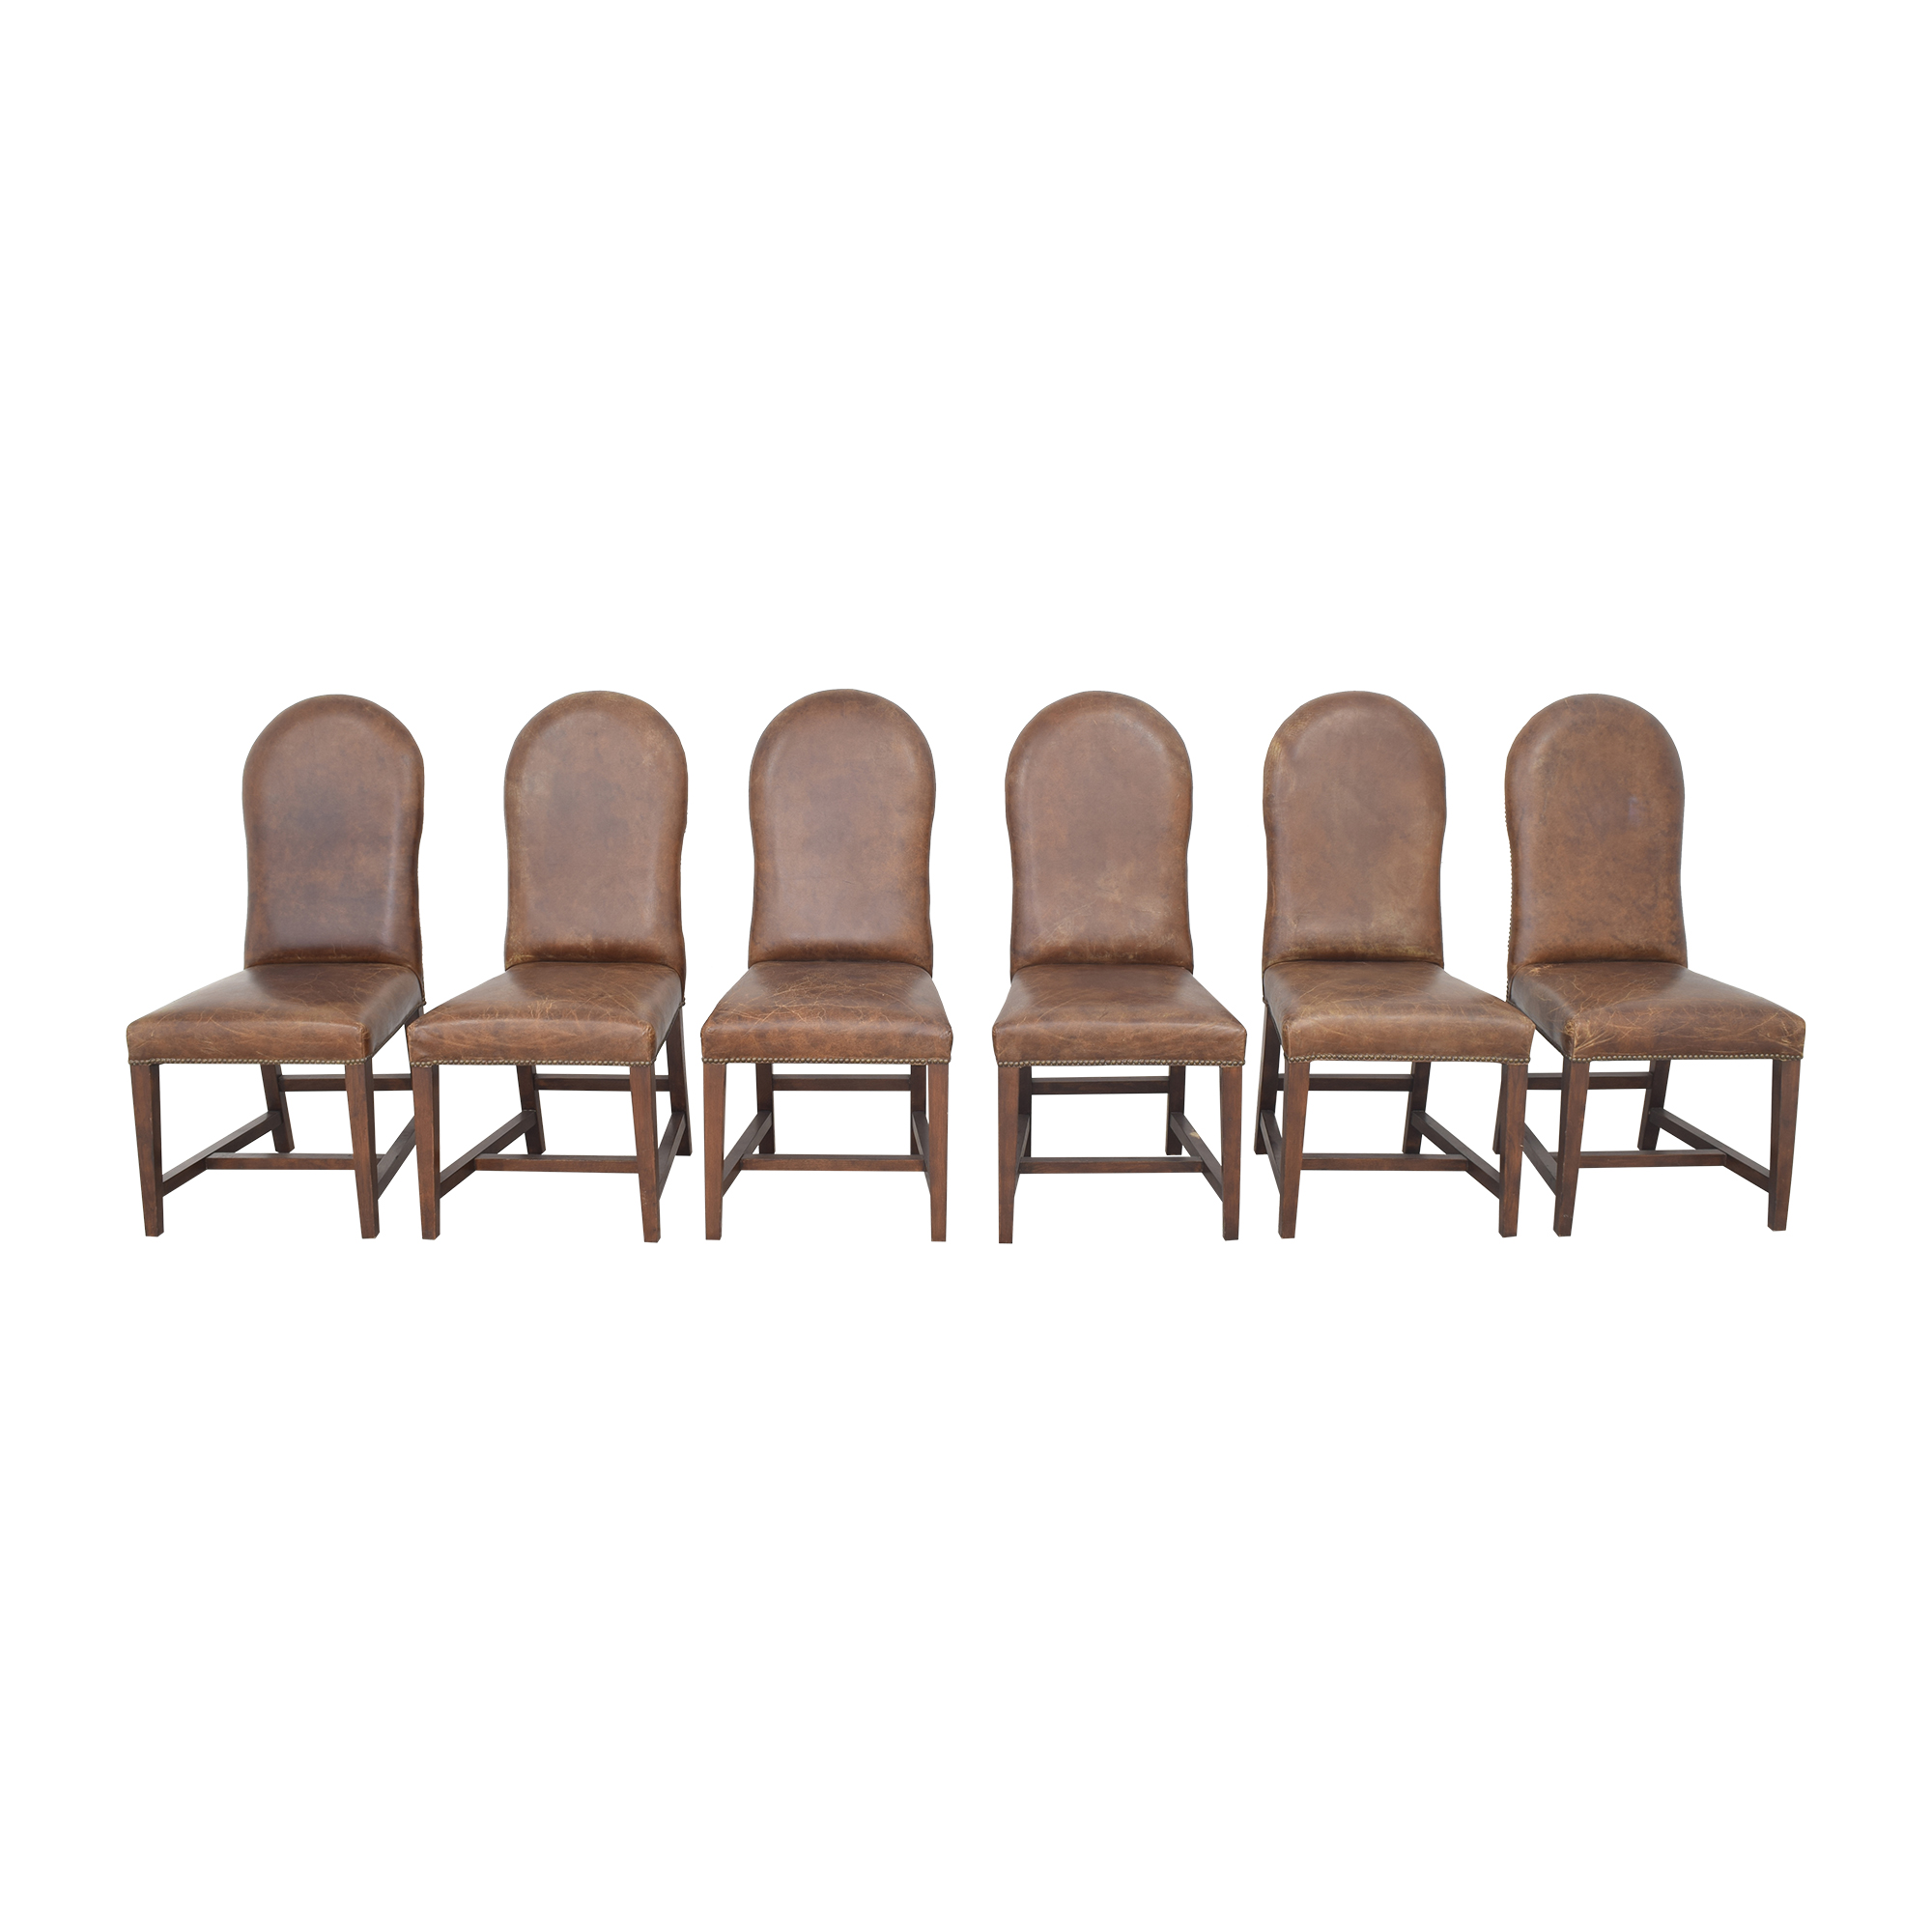 Timothy Oulton Timothy Oulton Upholstered Dining Chairs Dining Chairs